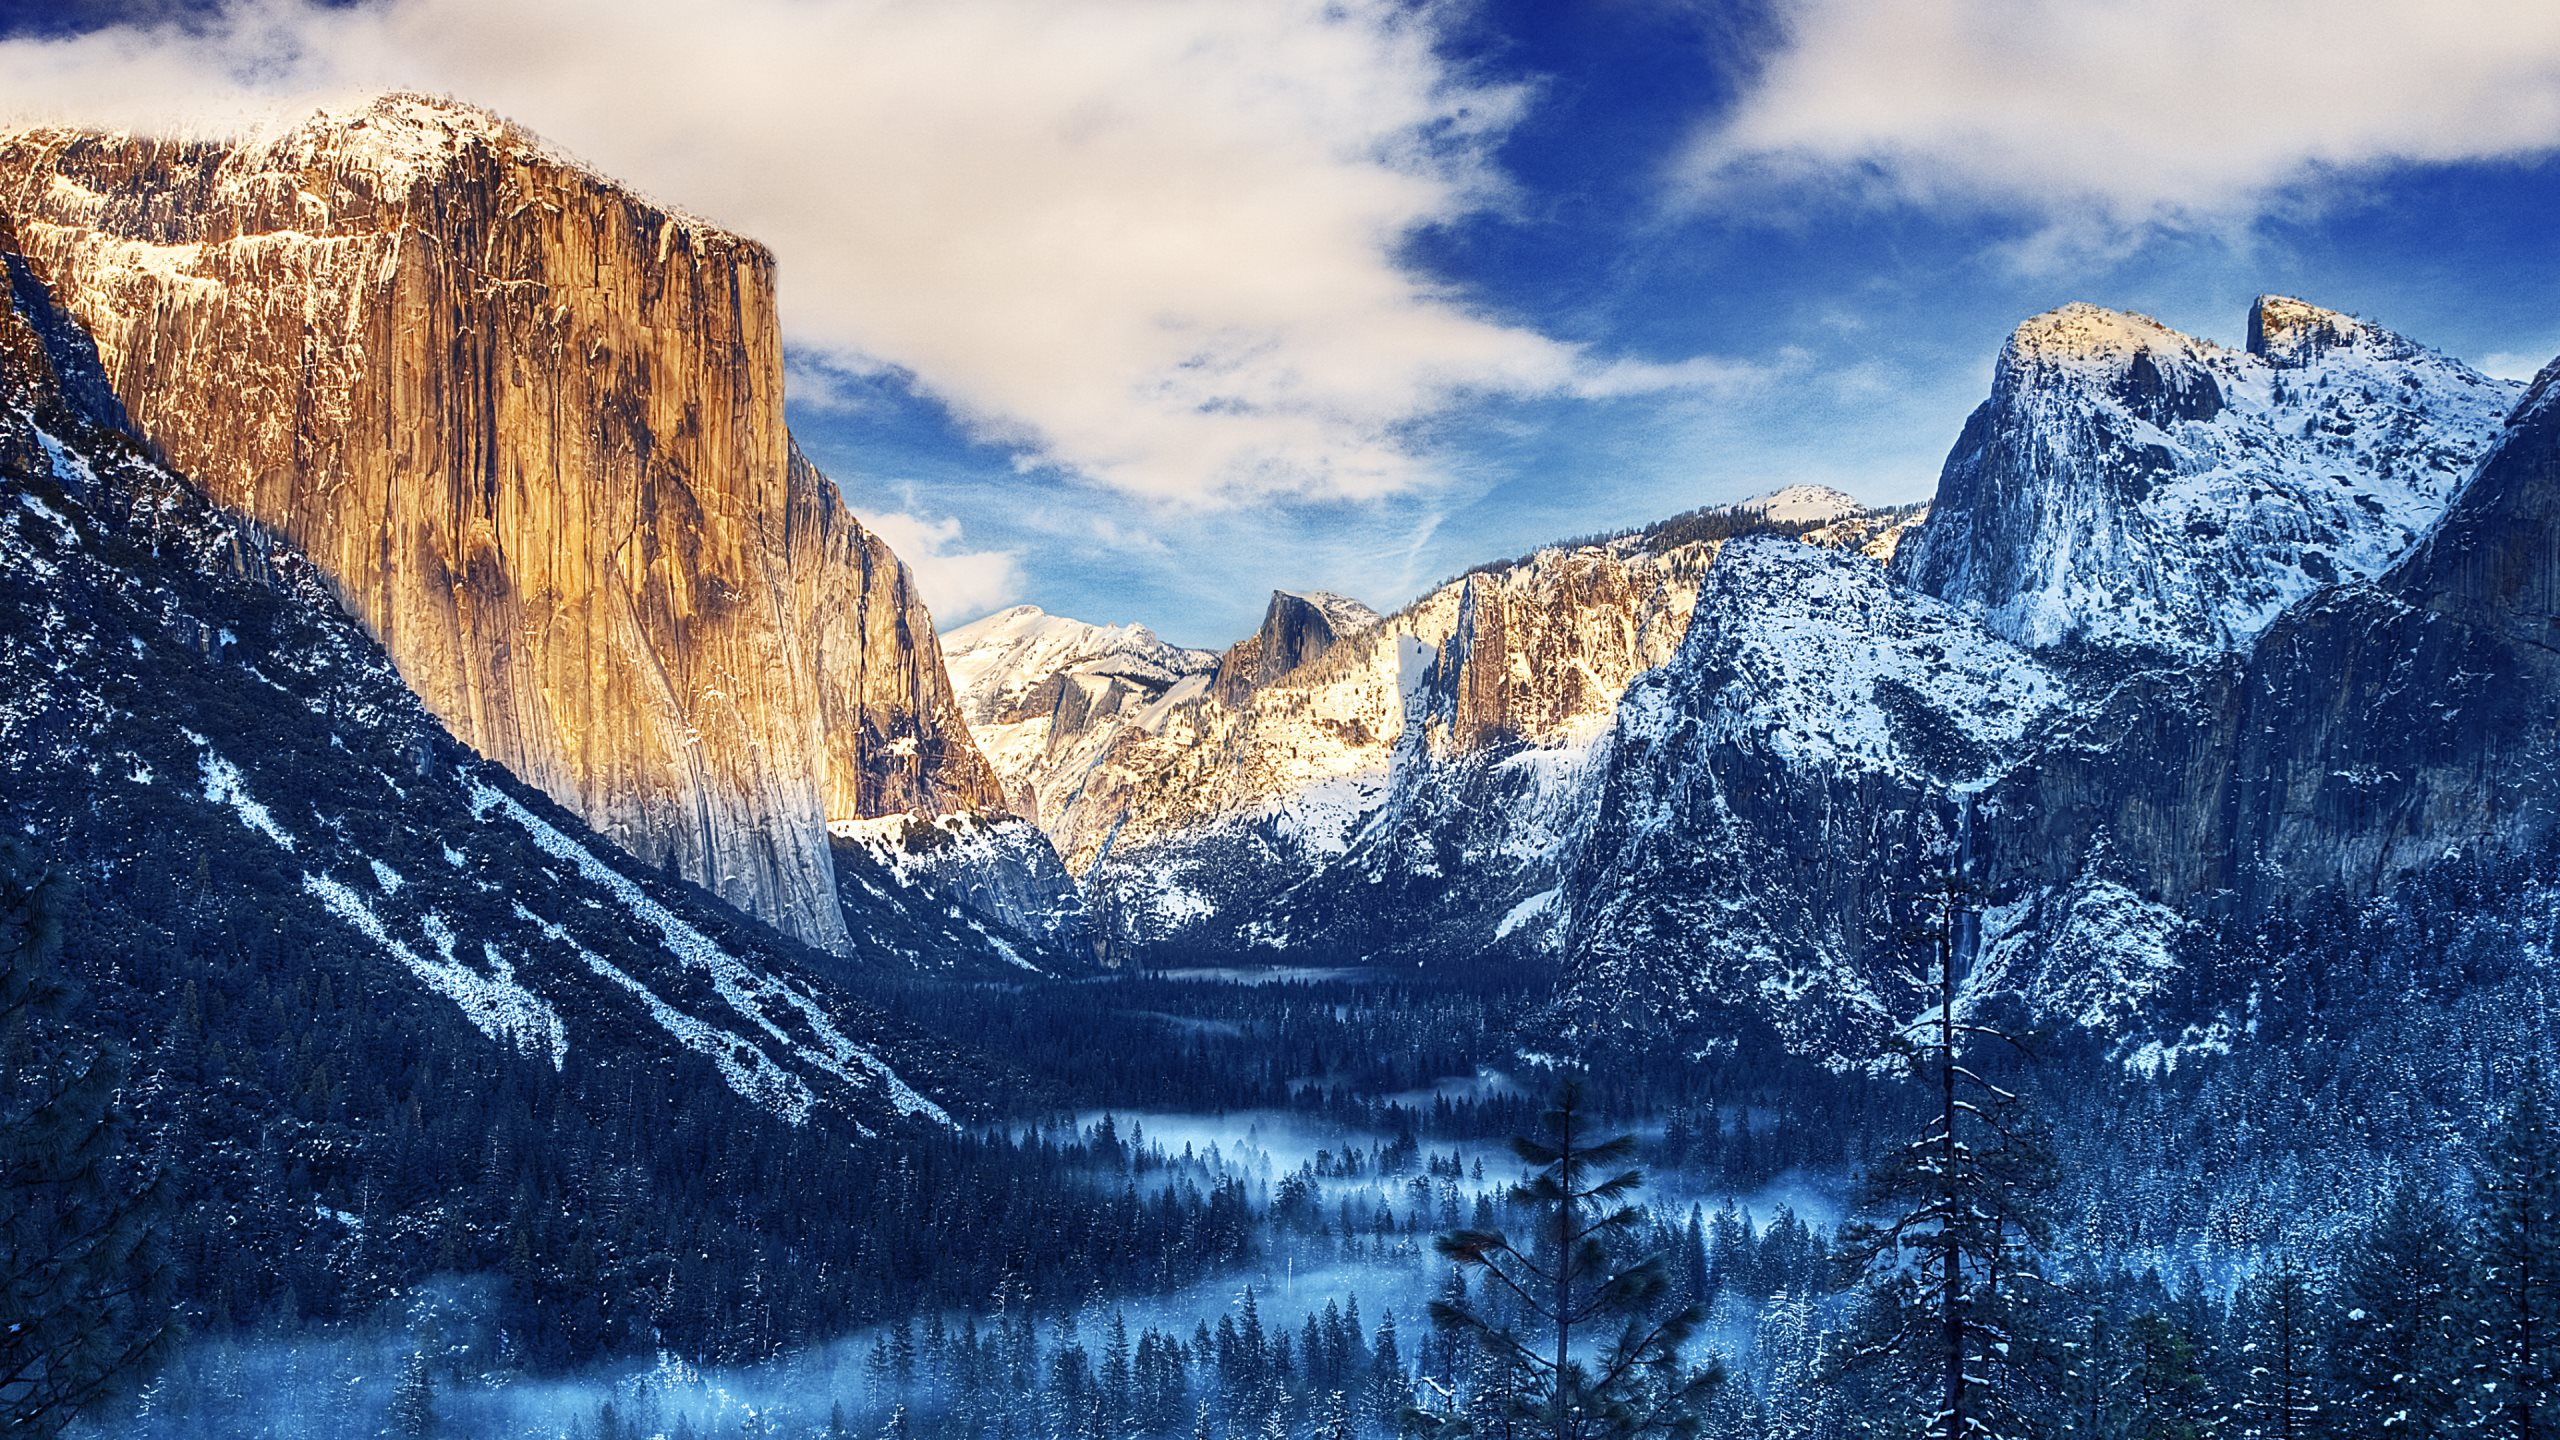 Hd wallpaper yosemite - Hd Wallpapers Yosemite